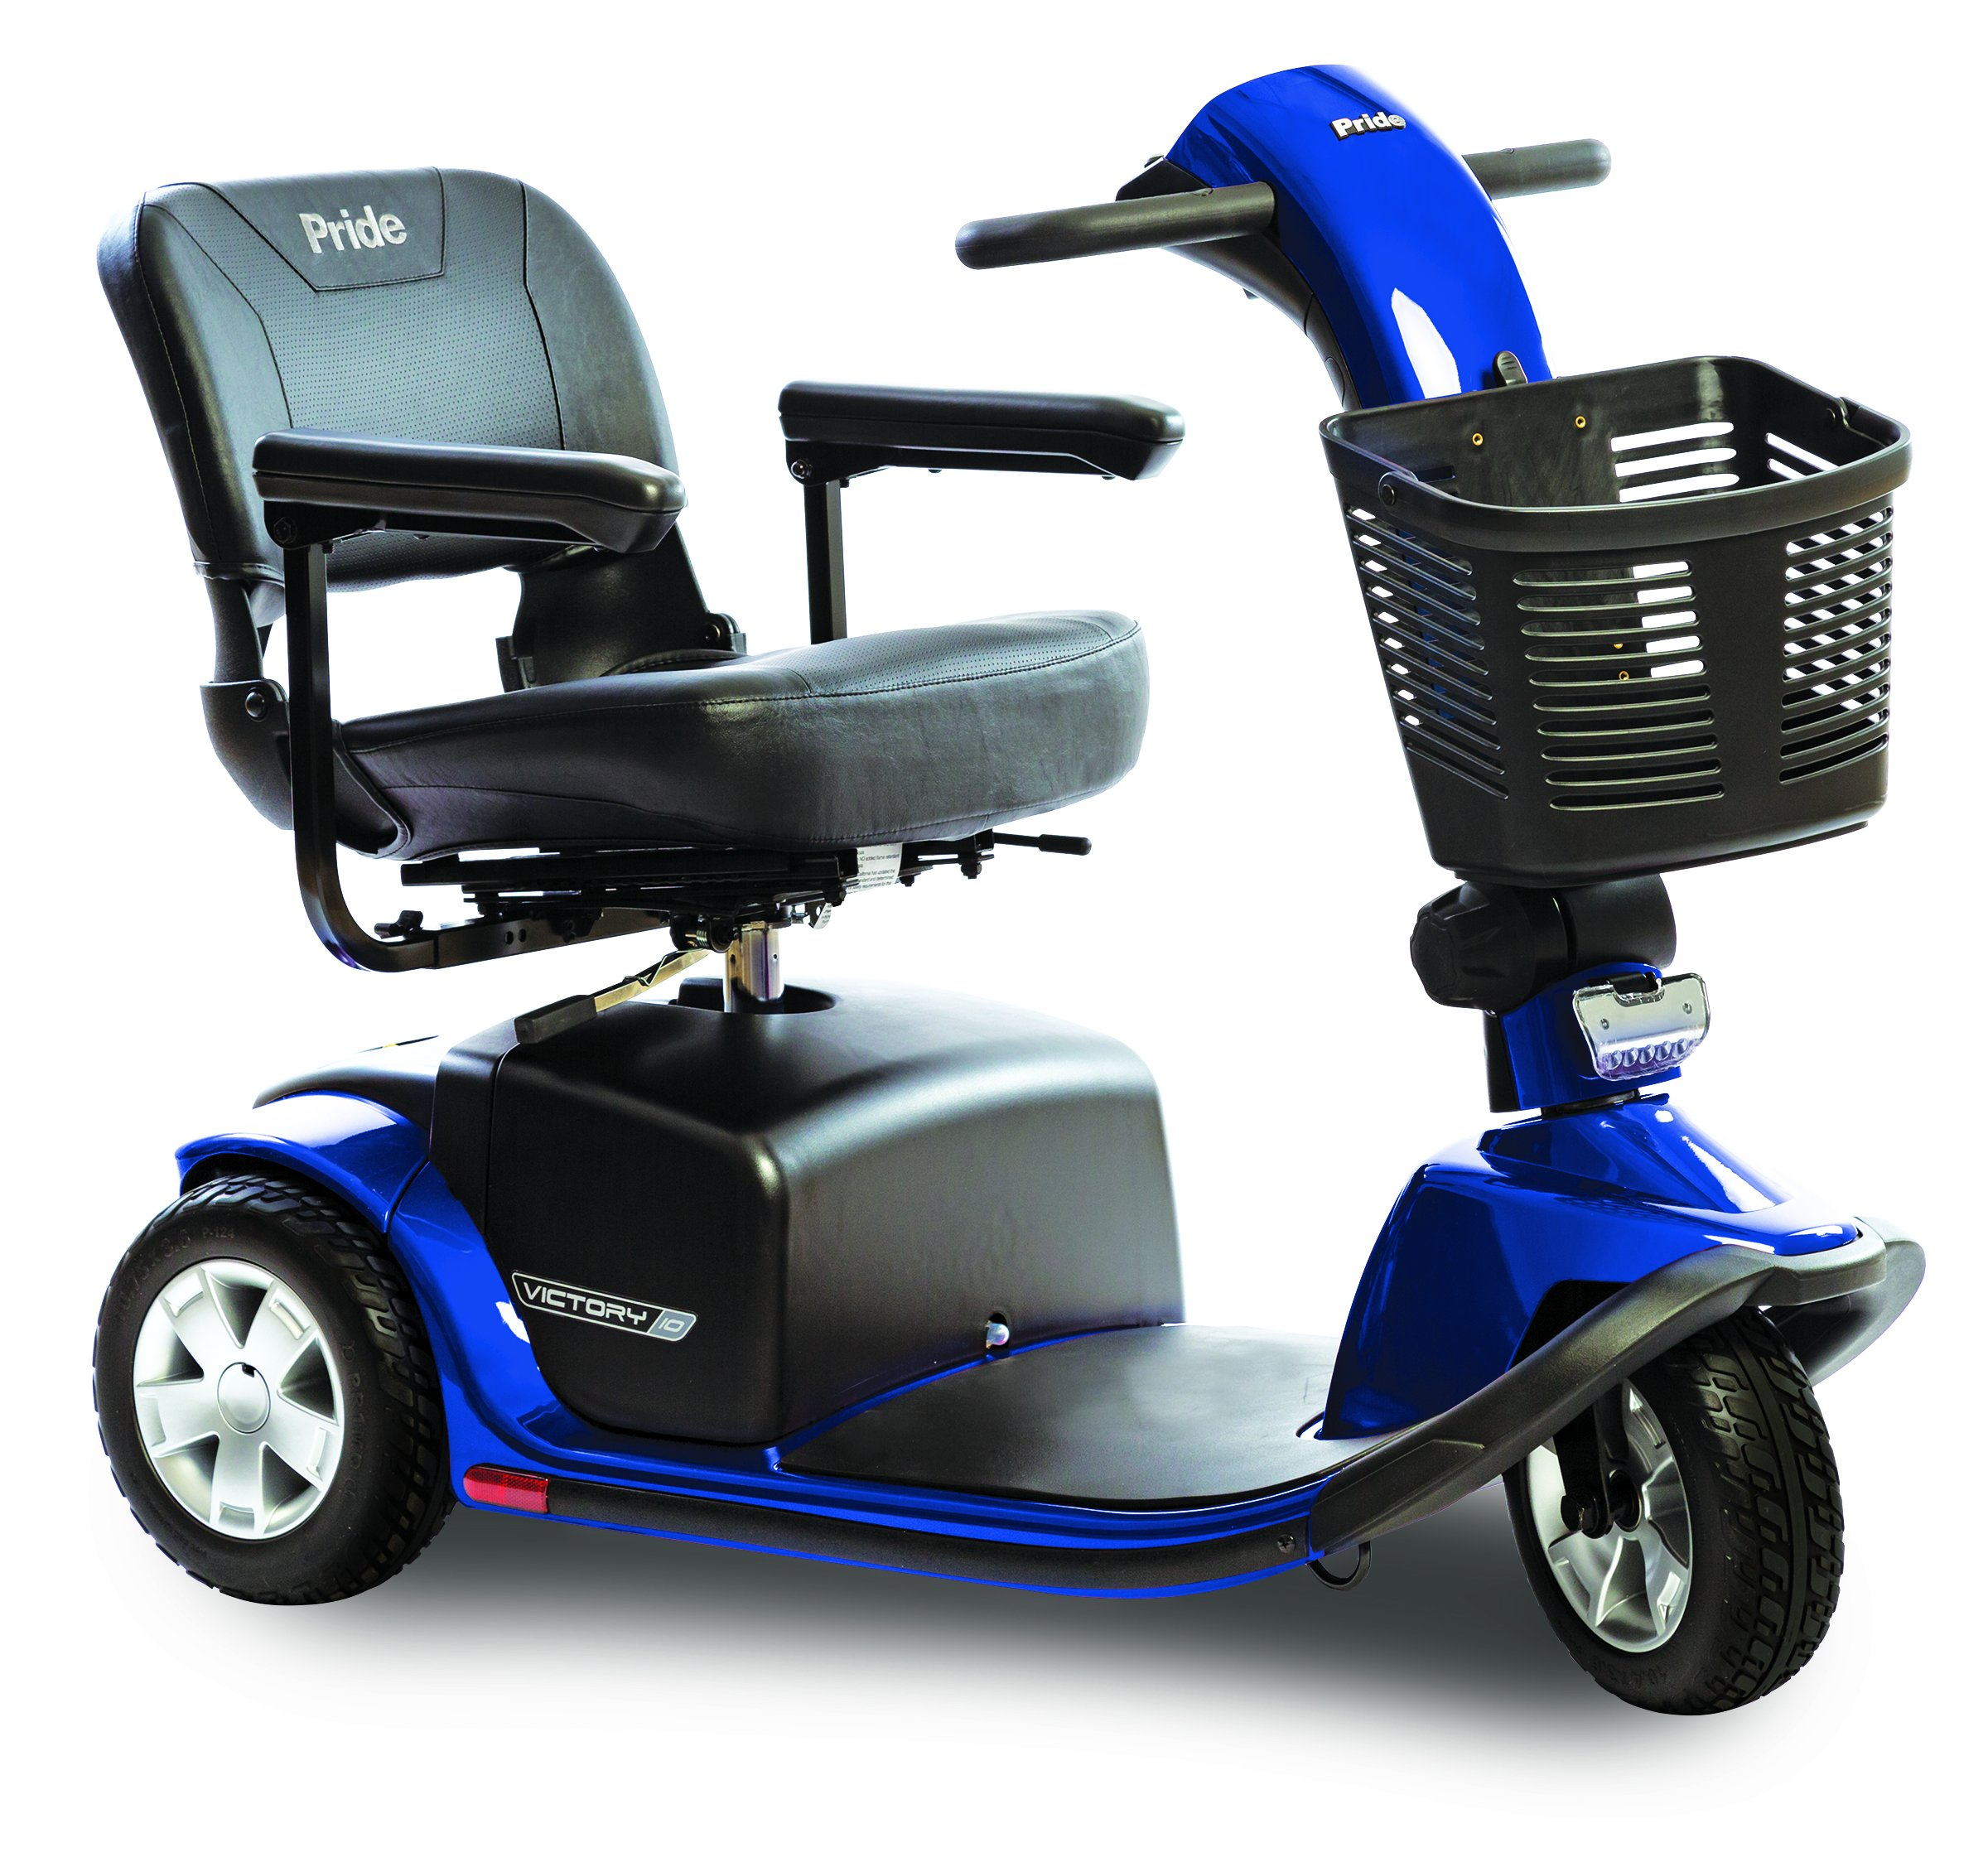 Challenger Sport Electric Scooter Wiring Diagram | Wiring ... on